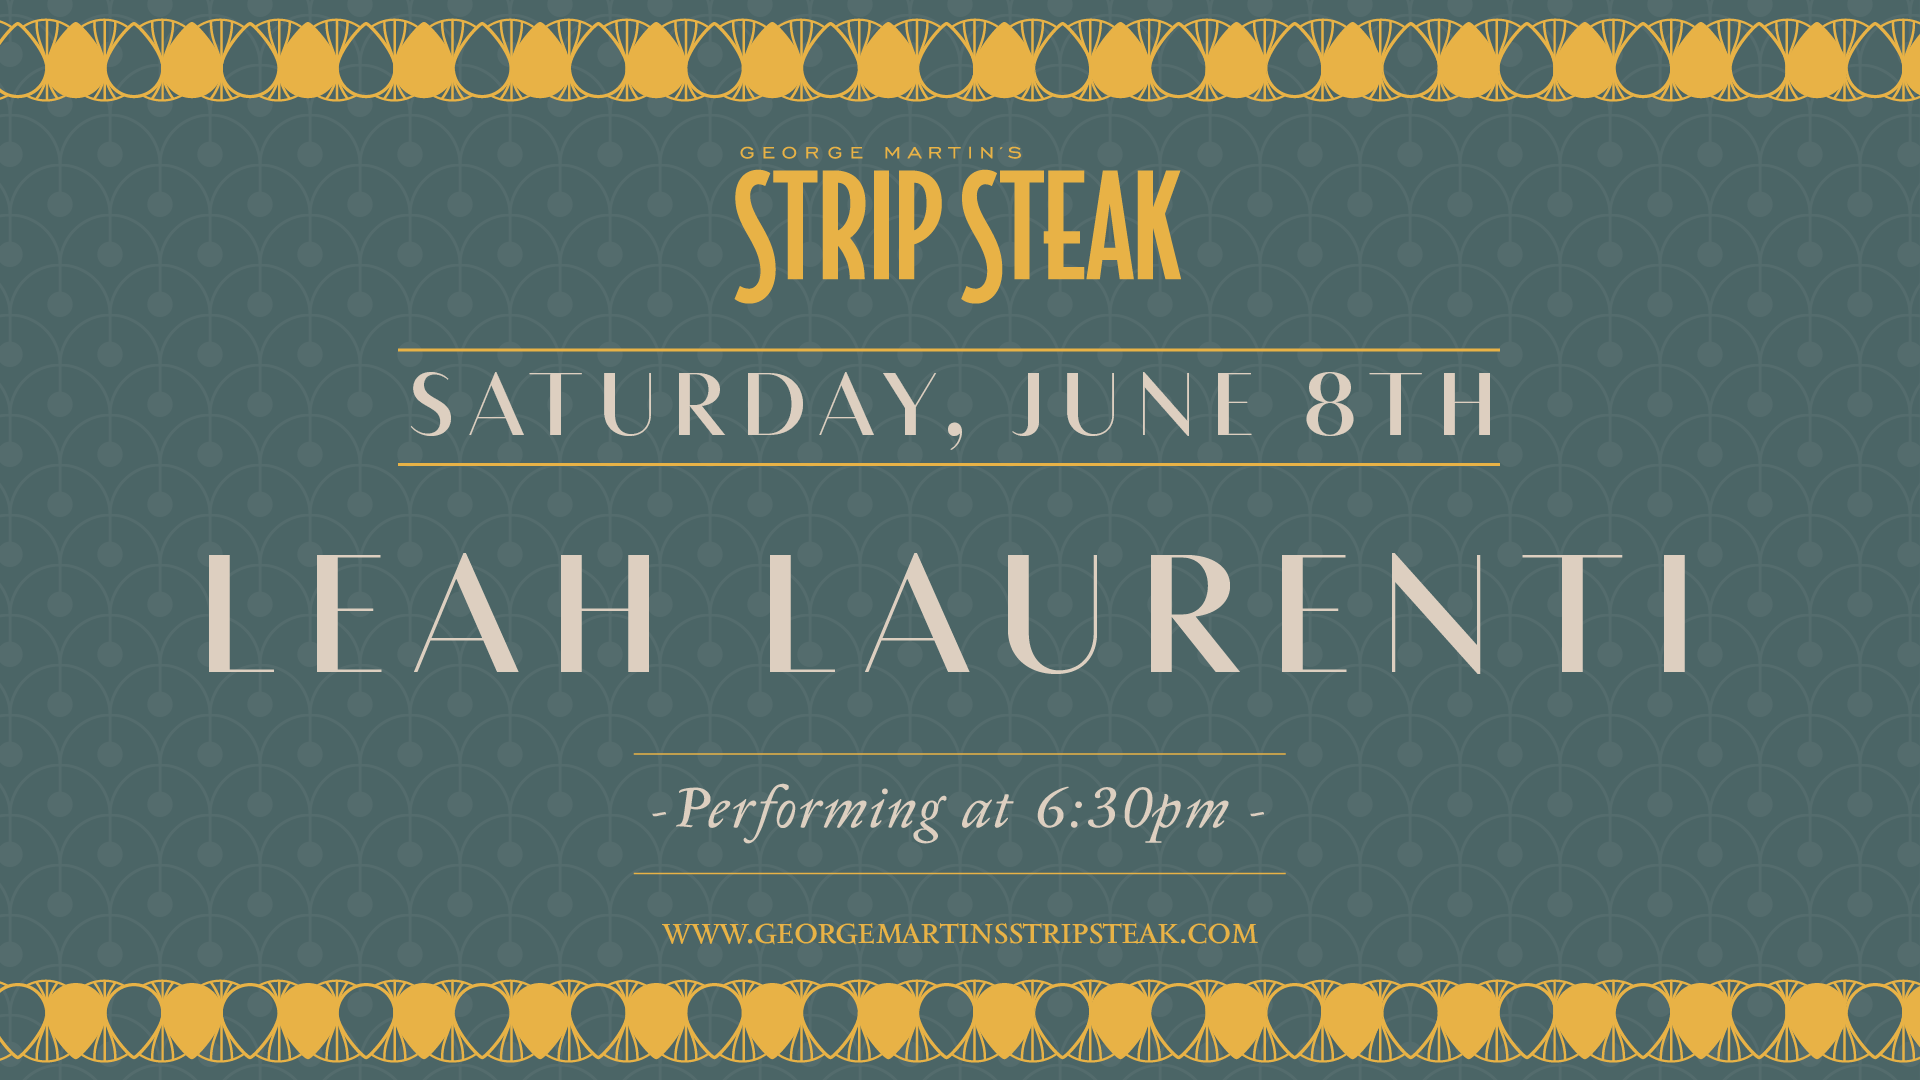 Flyer for live music with Leah Laurenti on June 8th at 6:30pm.